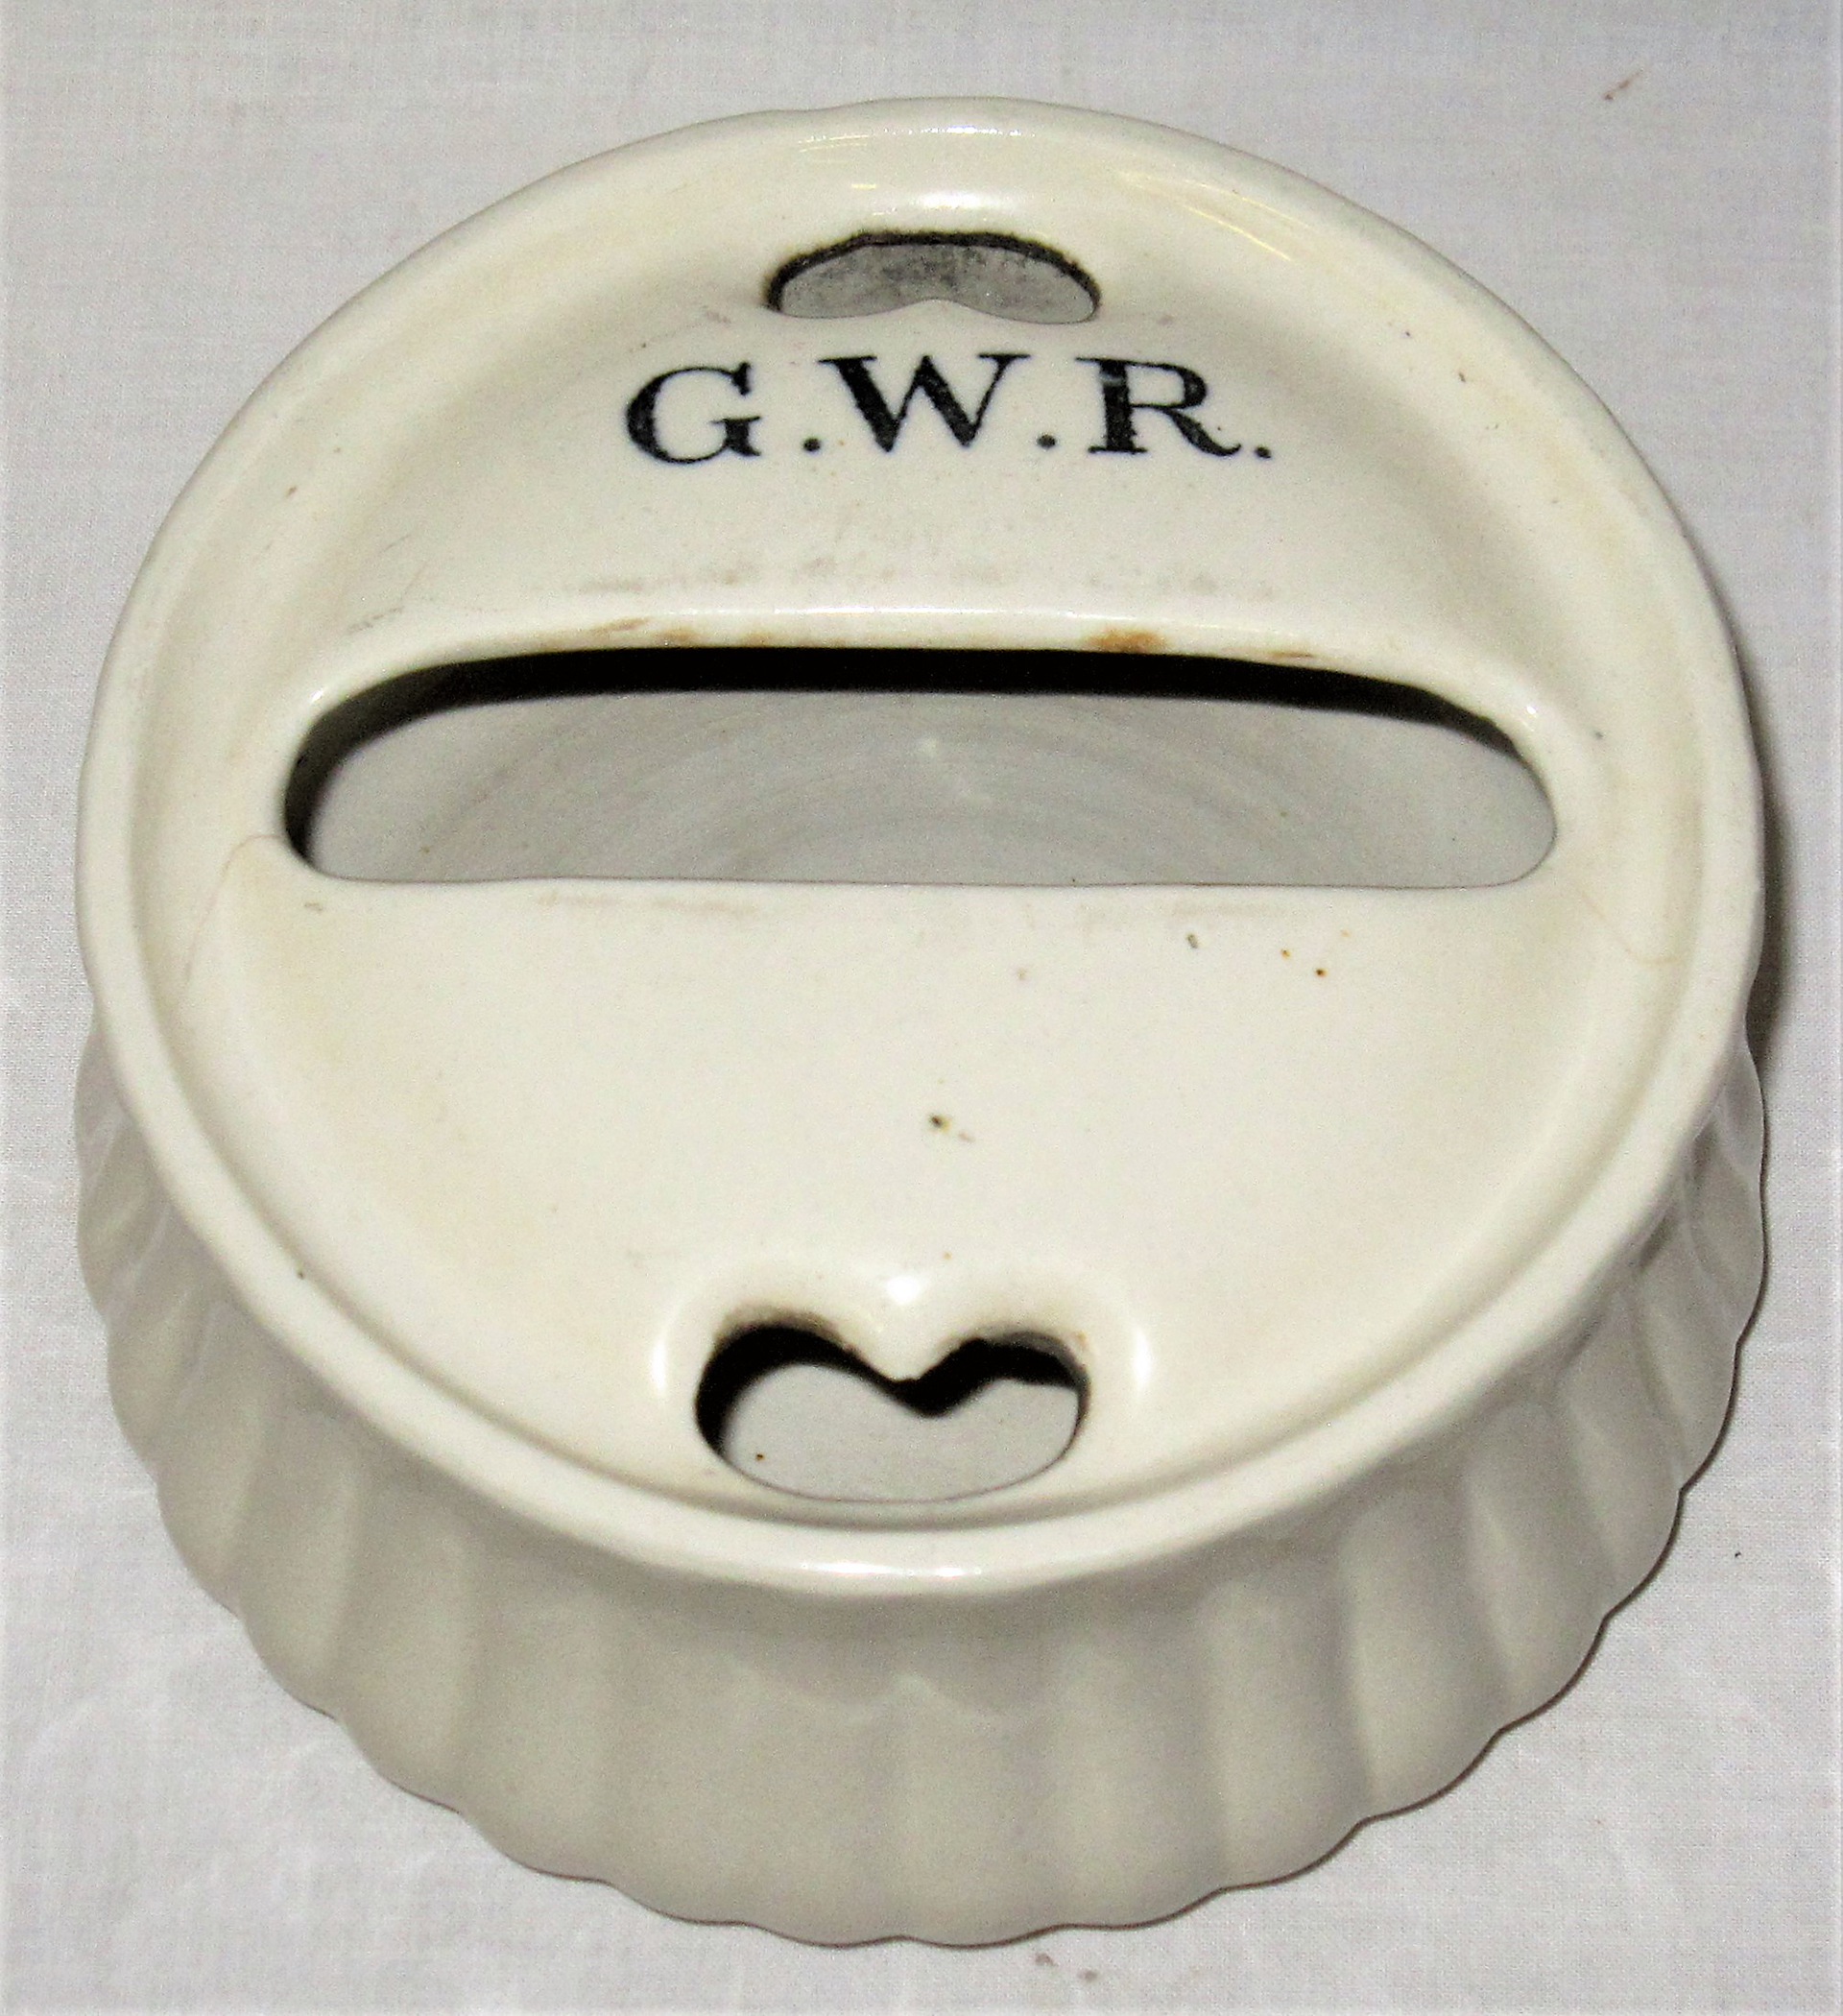 GWR China Paste Pot in good condition.